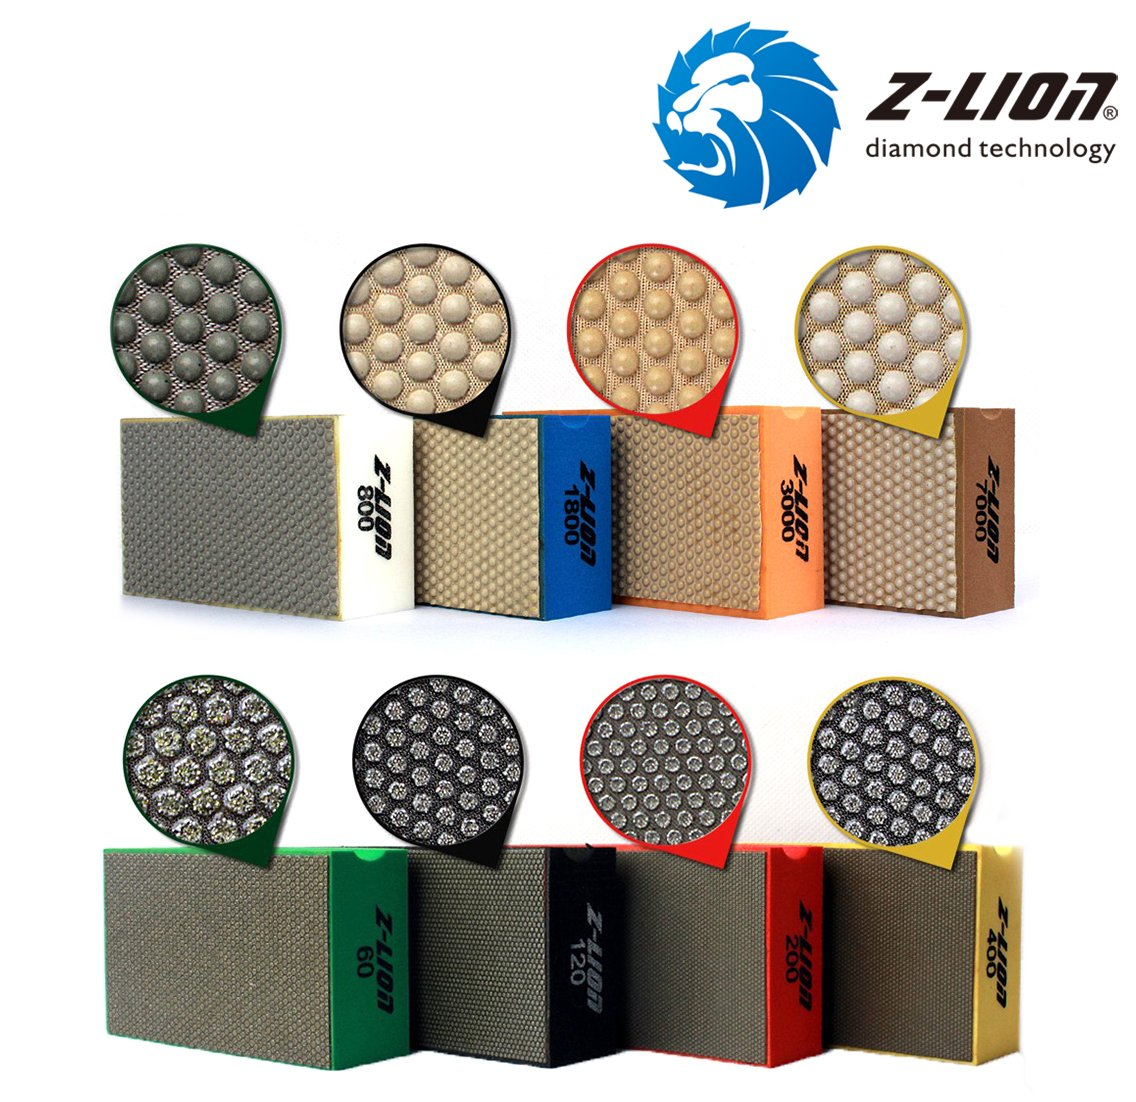 More buying choices for Z-Lion Diamond Hand Polishing Pads Arc Shape Back for Glass Stone - Pack of 8 Pcs by Z-LION (Image #1)